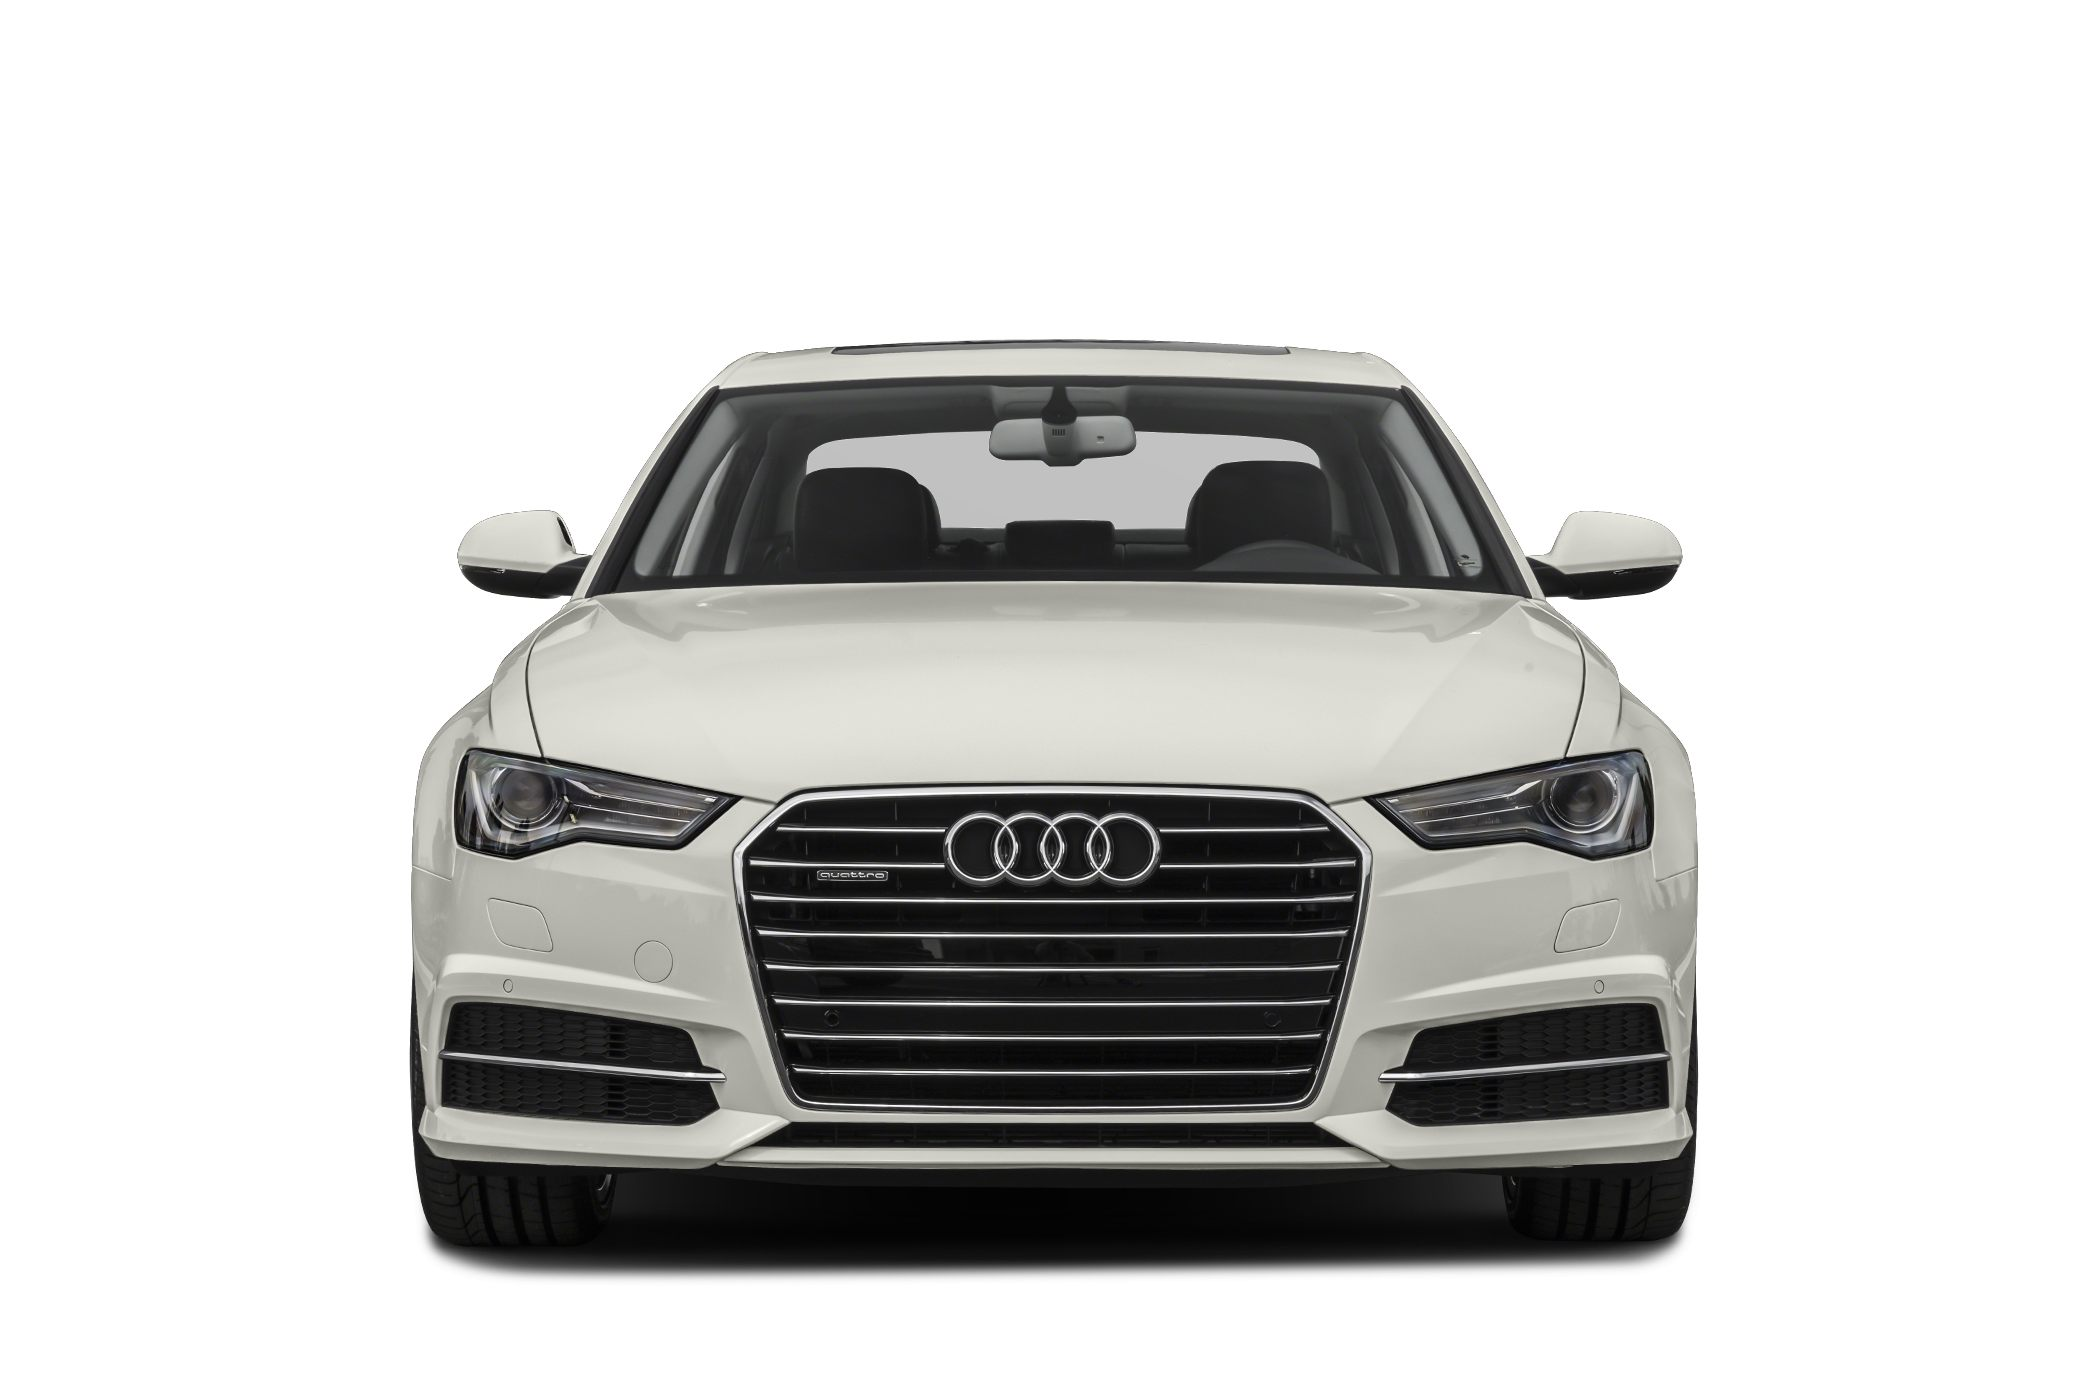 takeover research review lease audi test quattro asp pioneers en an s leasing leasebusters tfsi technik road canada teaser alt